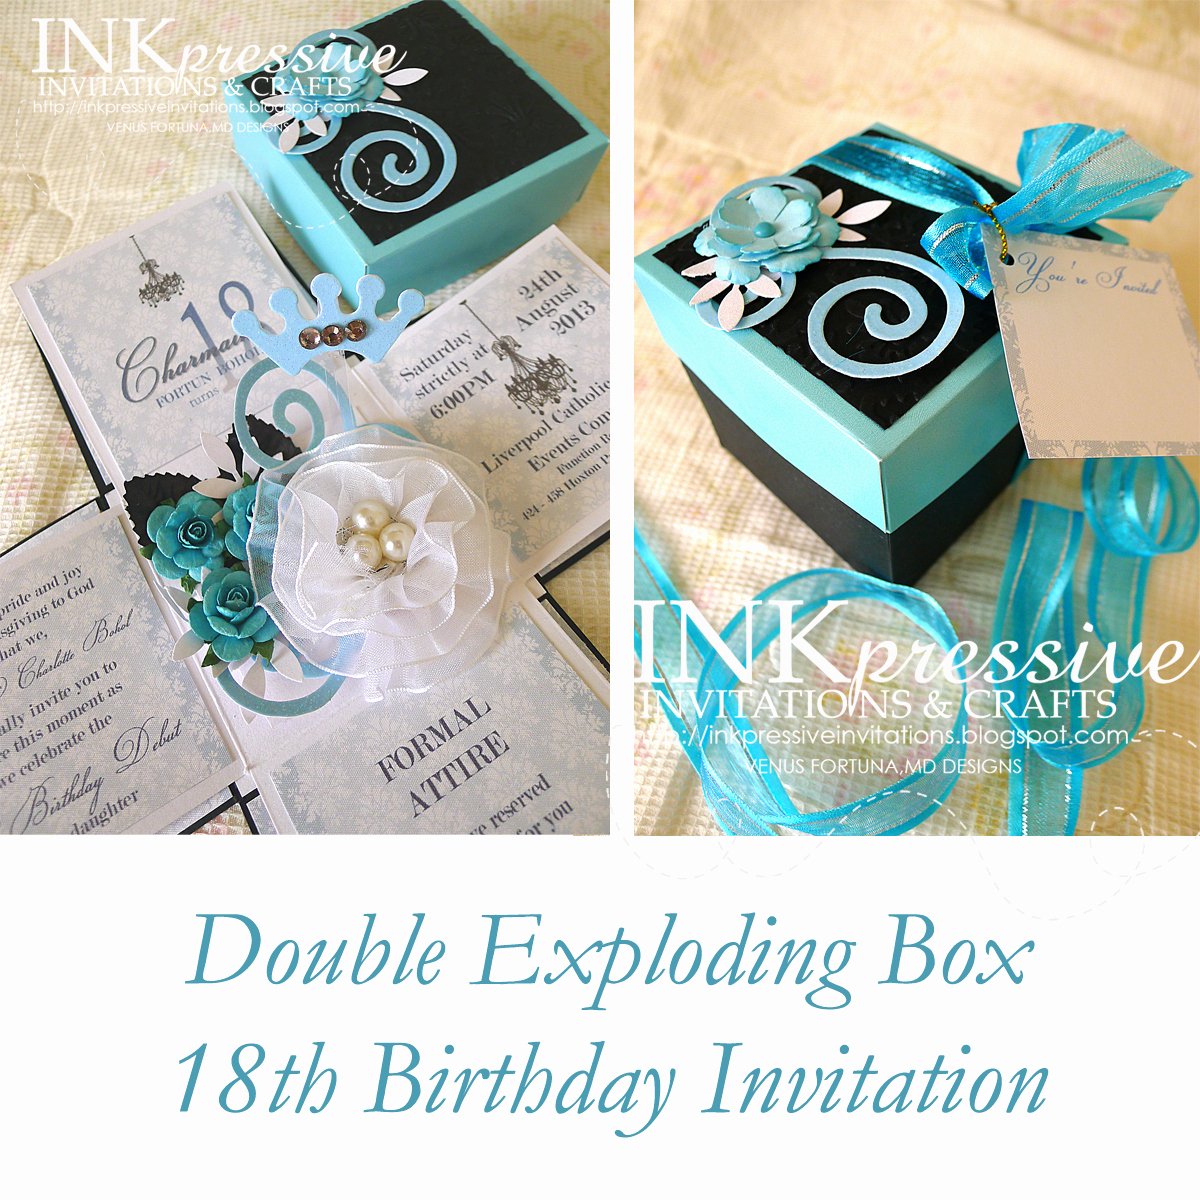 Exploding Box Invitation Template Awesome Teal and Black Exploding Box 18th Birthday Inkpressive